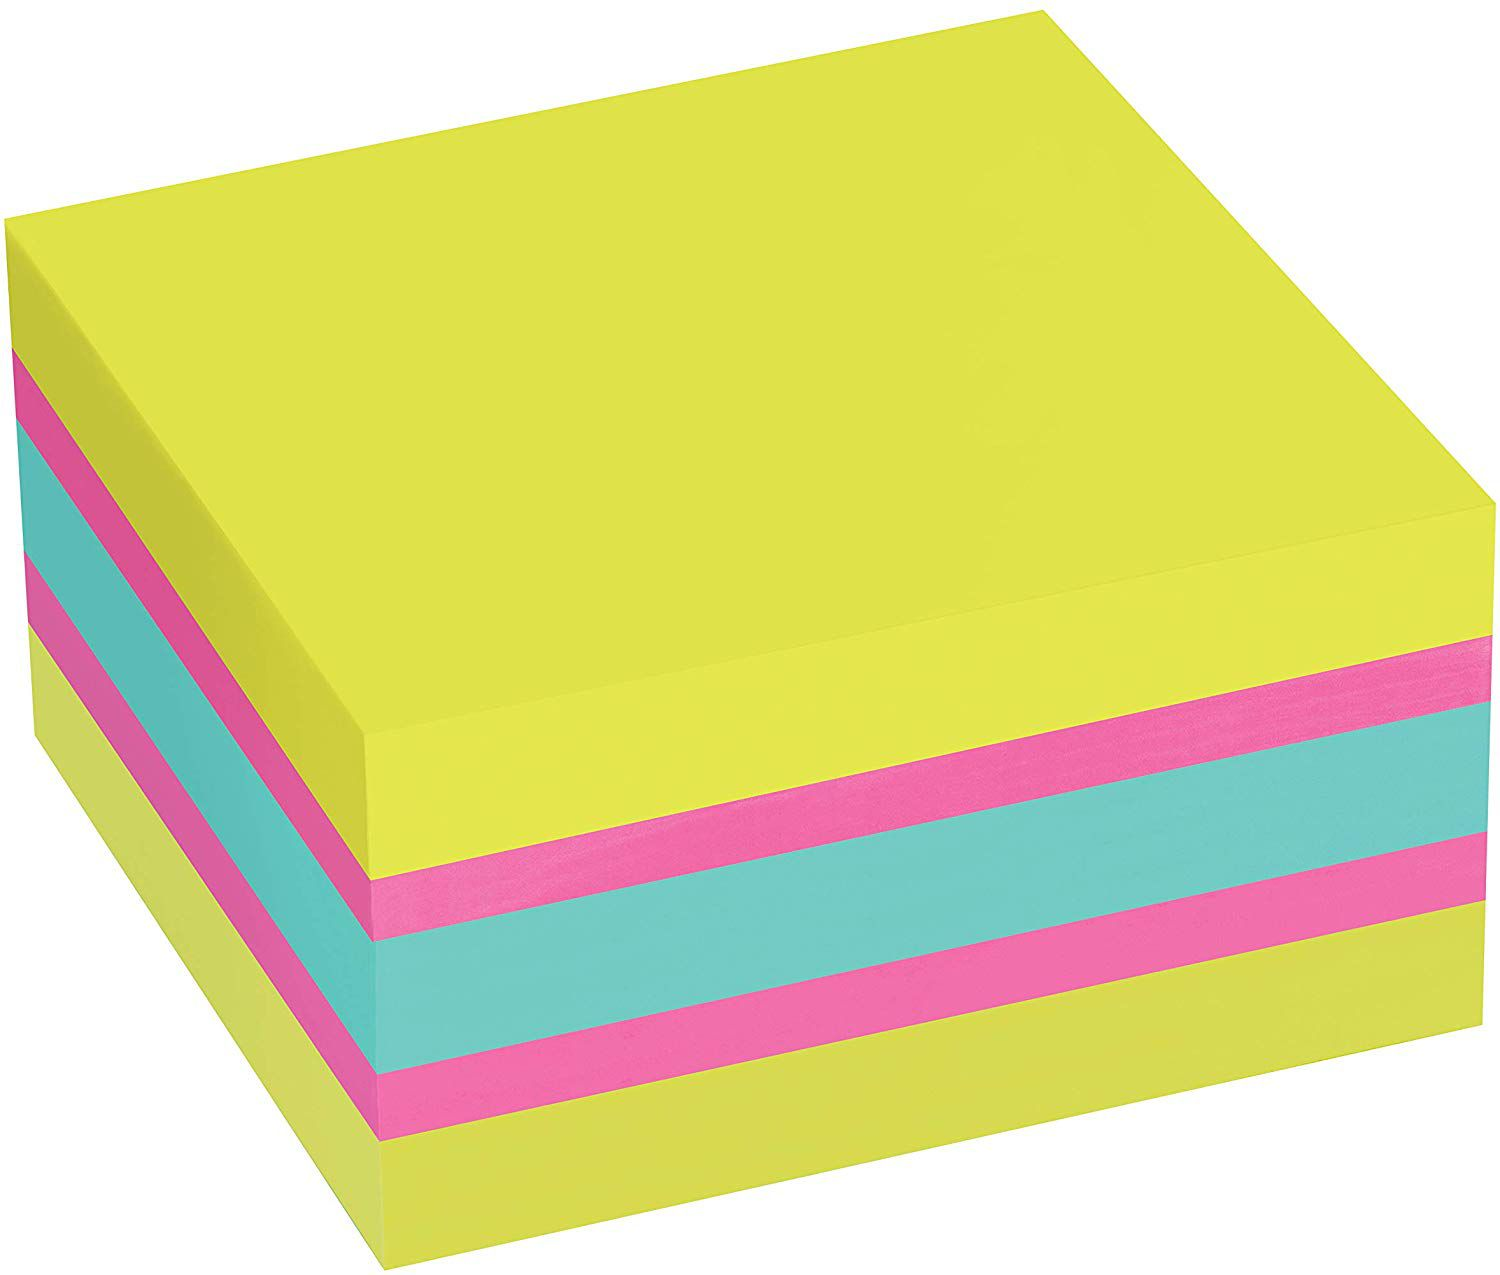 Post it - Bright Colors - 360un